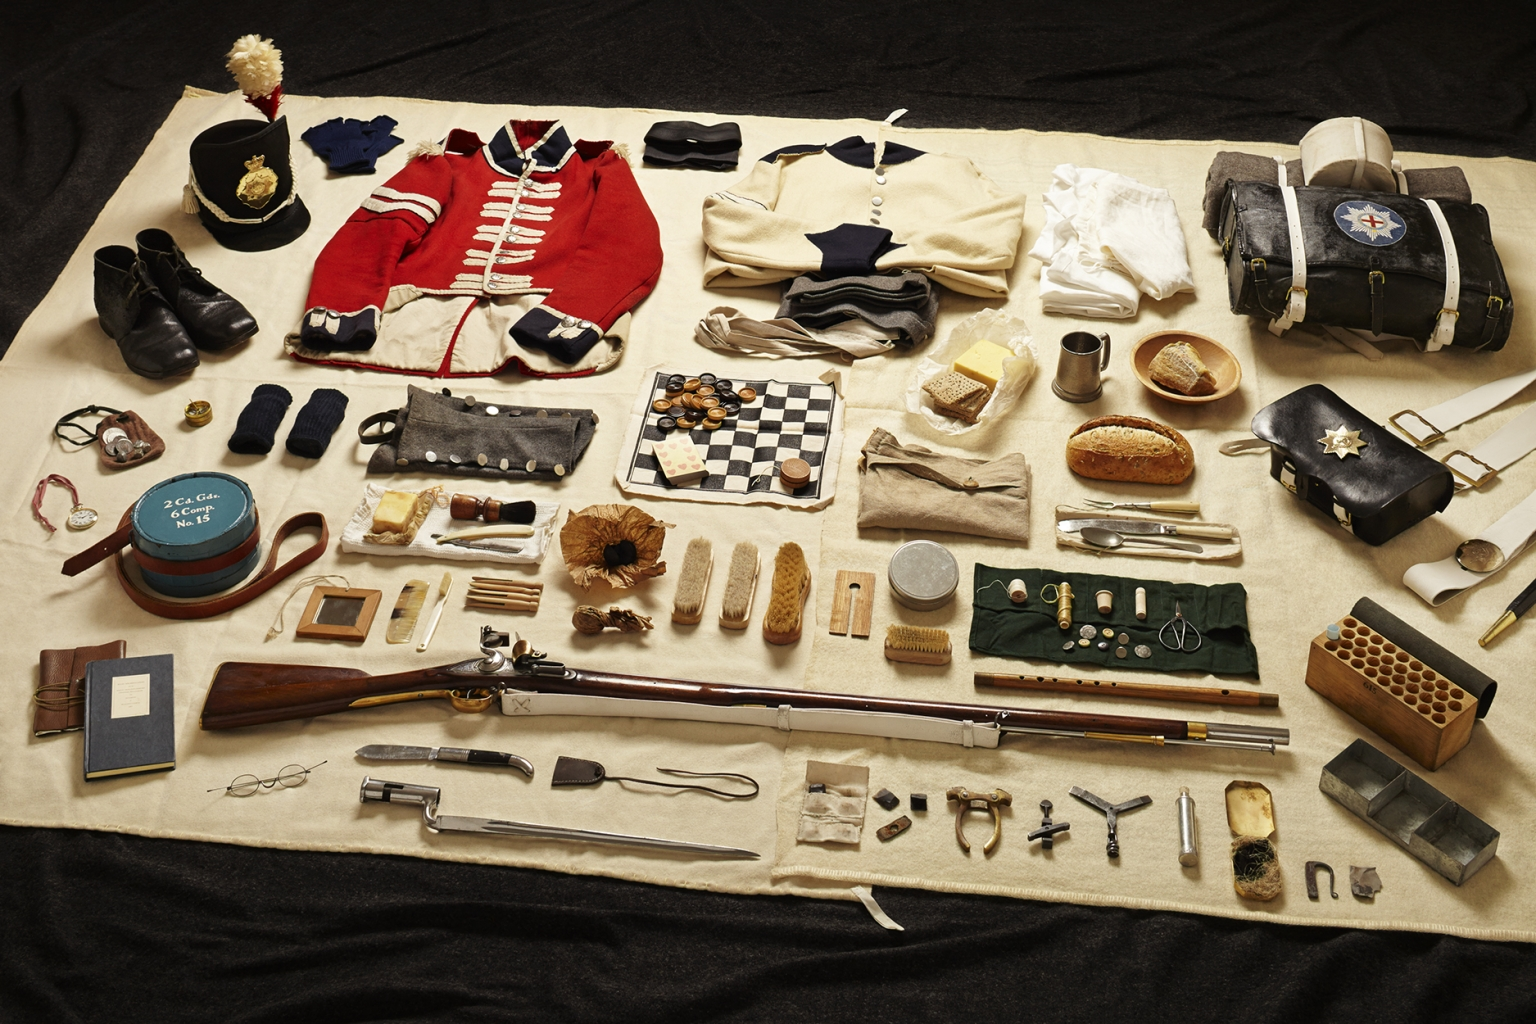 Private Soldier, Battle of Waterloo, 1815 - Soldiers' Inventories - Photo by Thom Atkinson